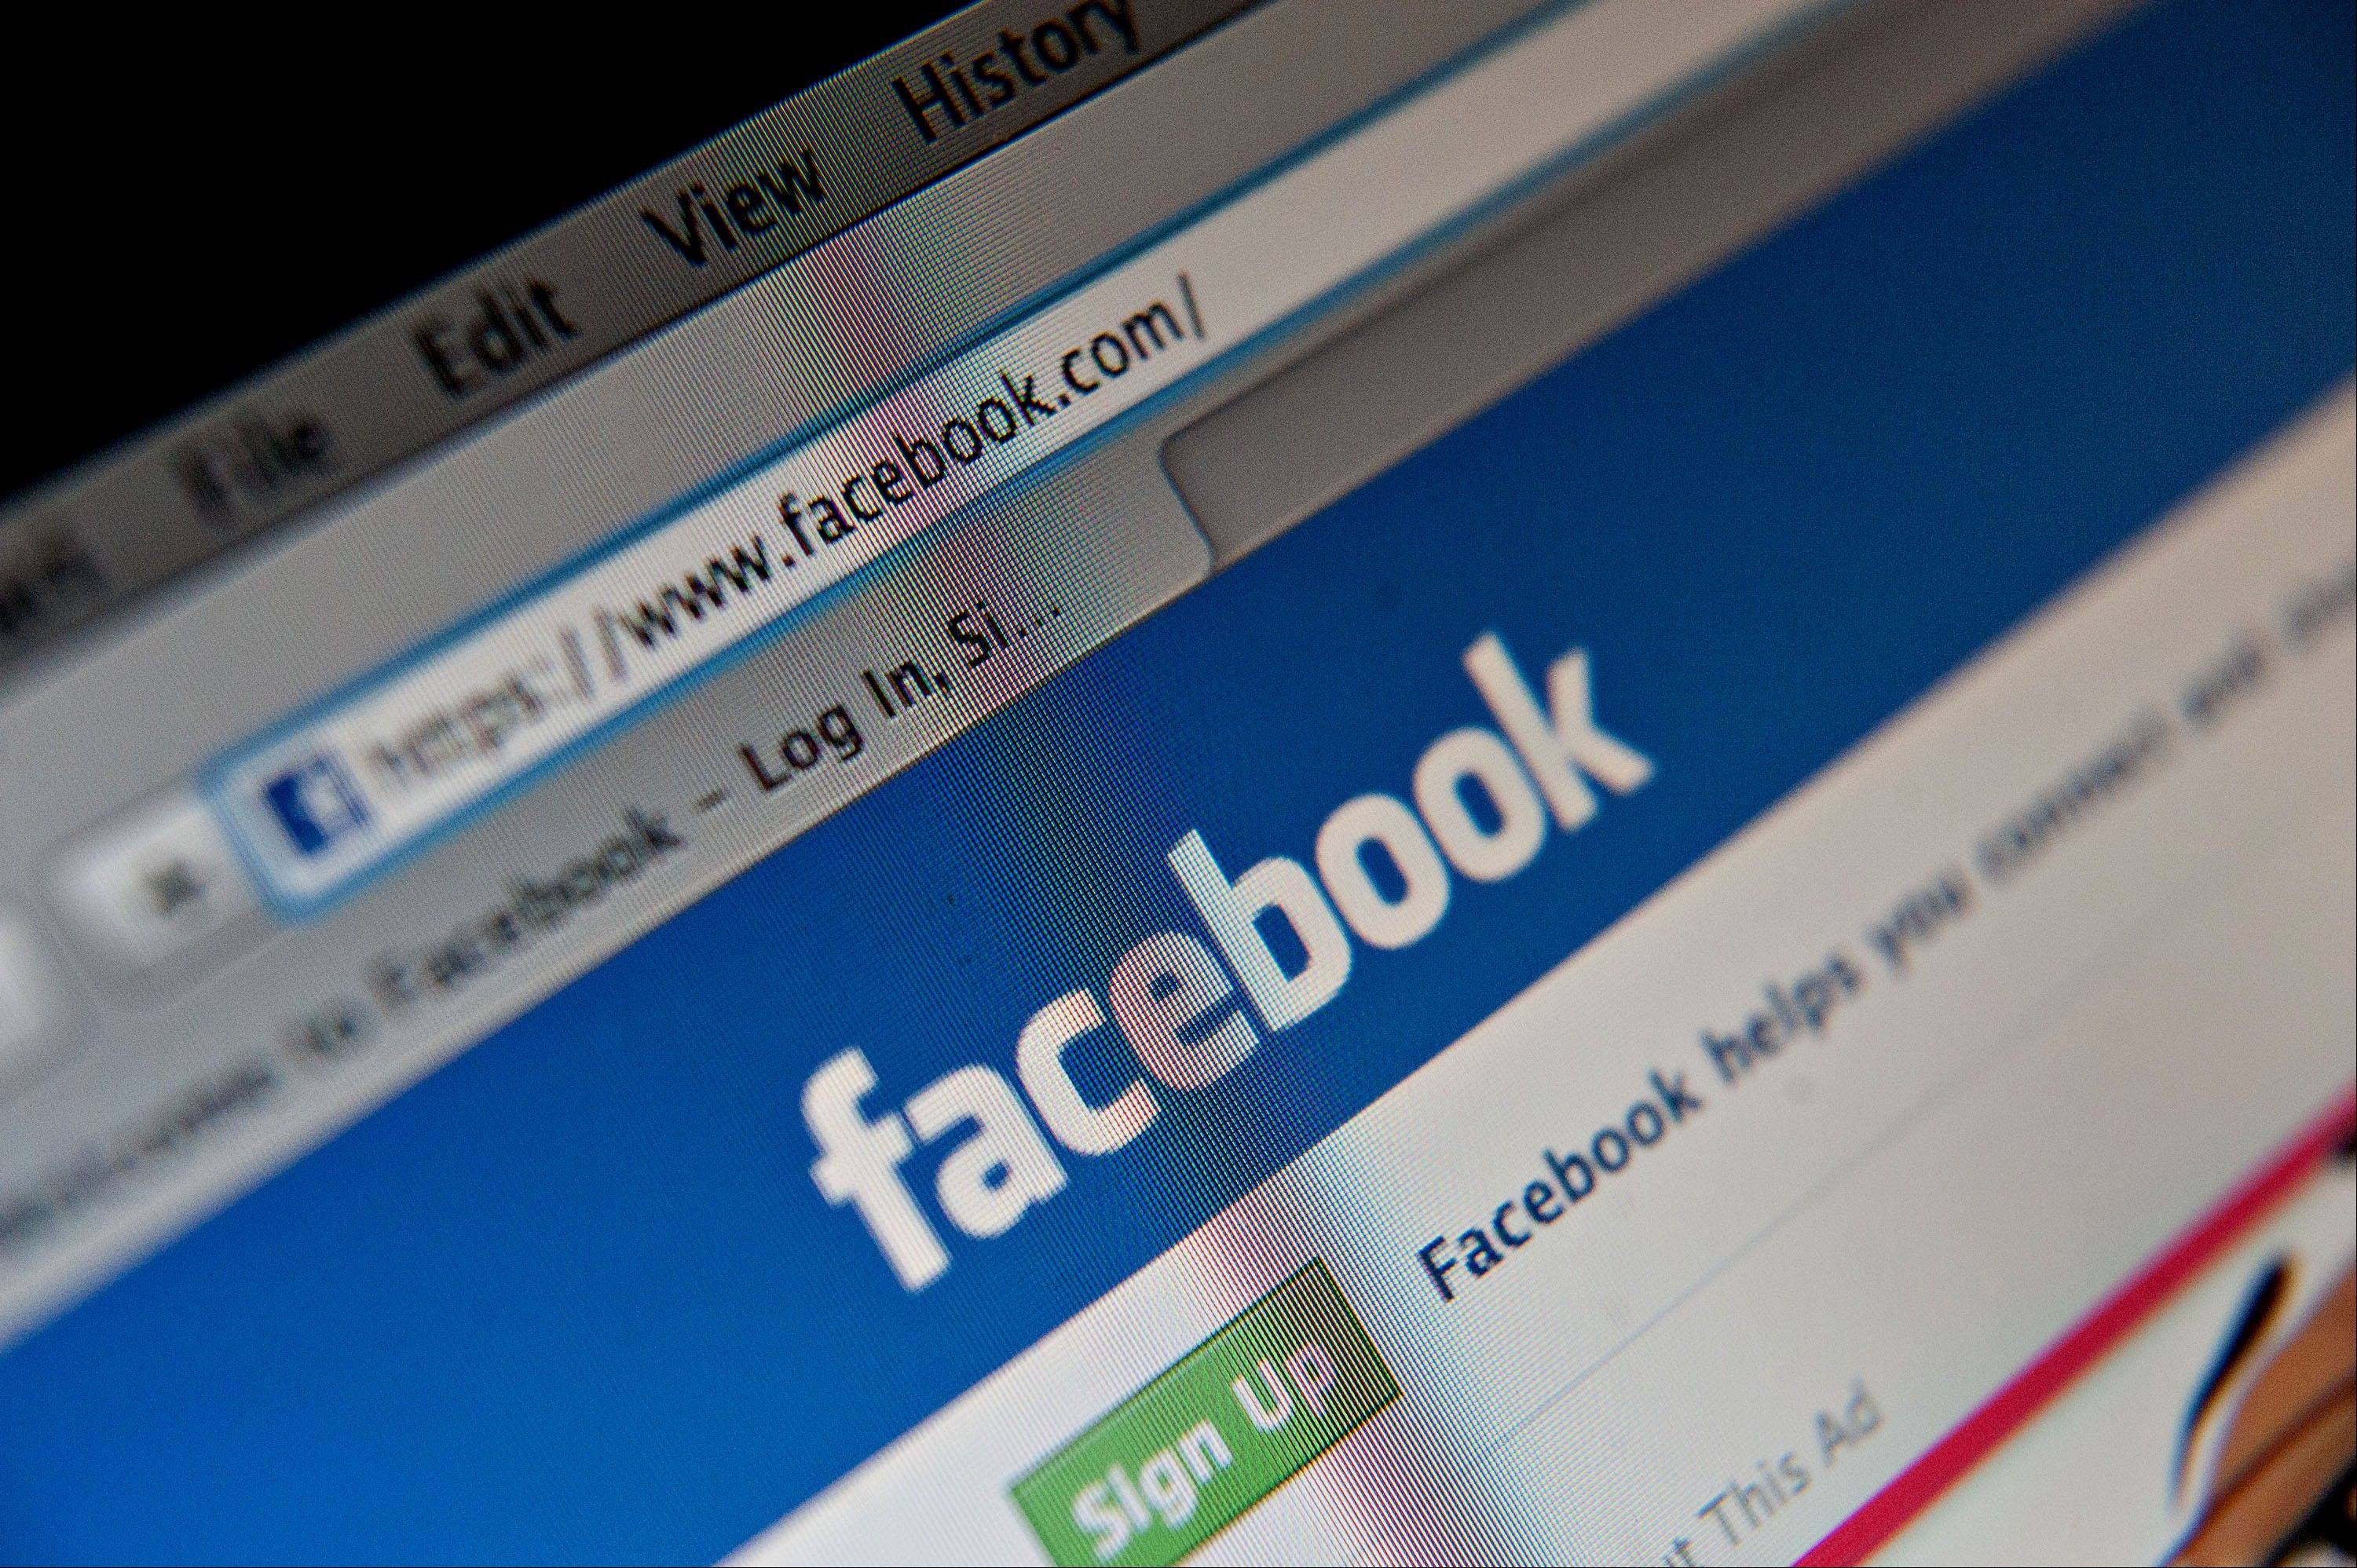 Facebook Inc., which has more than 1 billion members, said the number of people paying to play games on its service rose 24 percent from a year ago, according to an emailed statement. Desktop-game users on the site jumped to more than 250 million from 235 million in October. The company paid a total of $2 billion to developers in 2012.